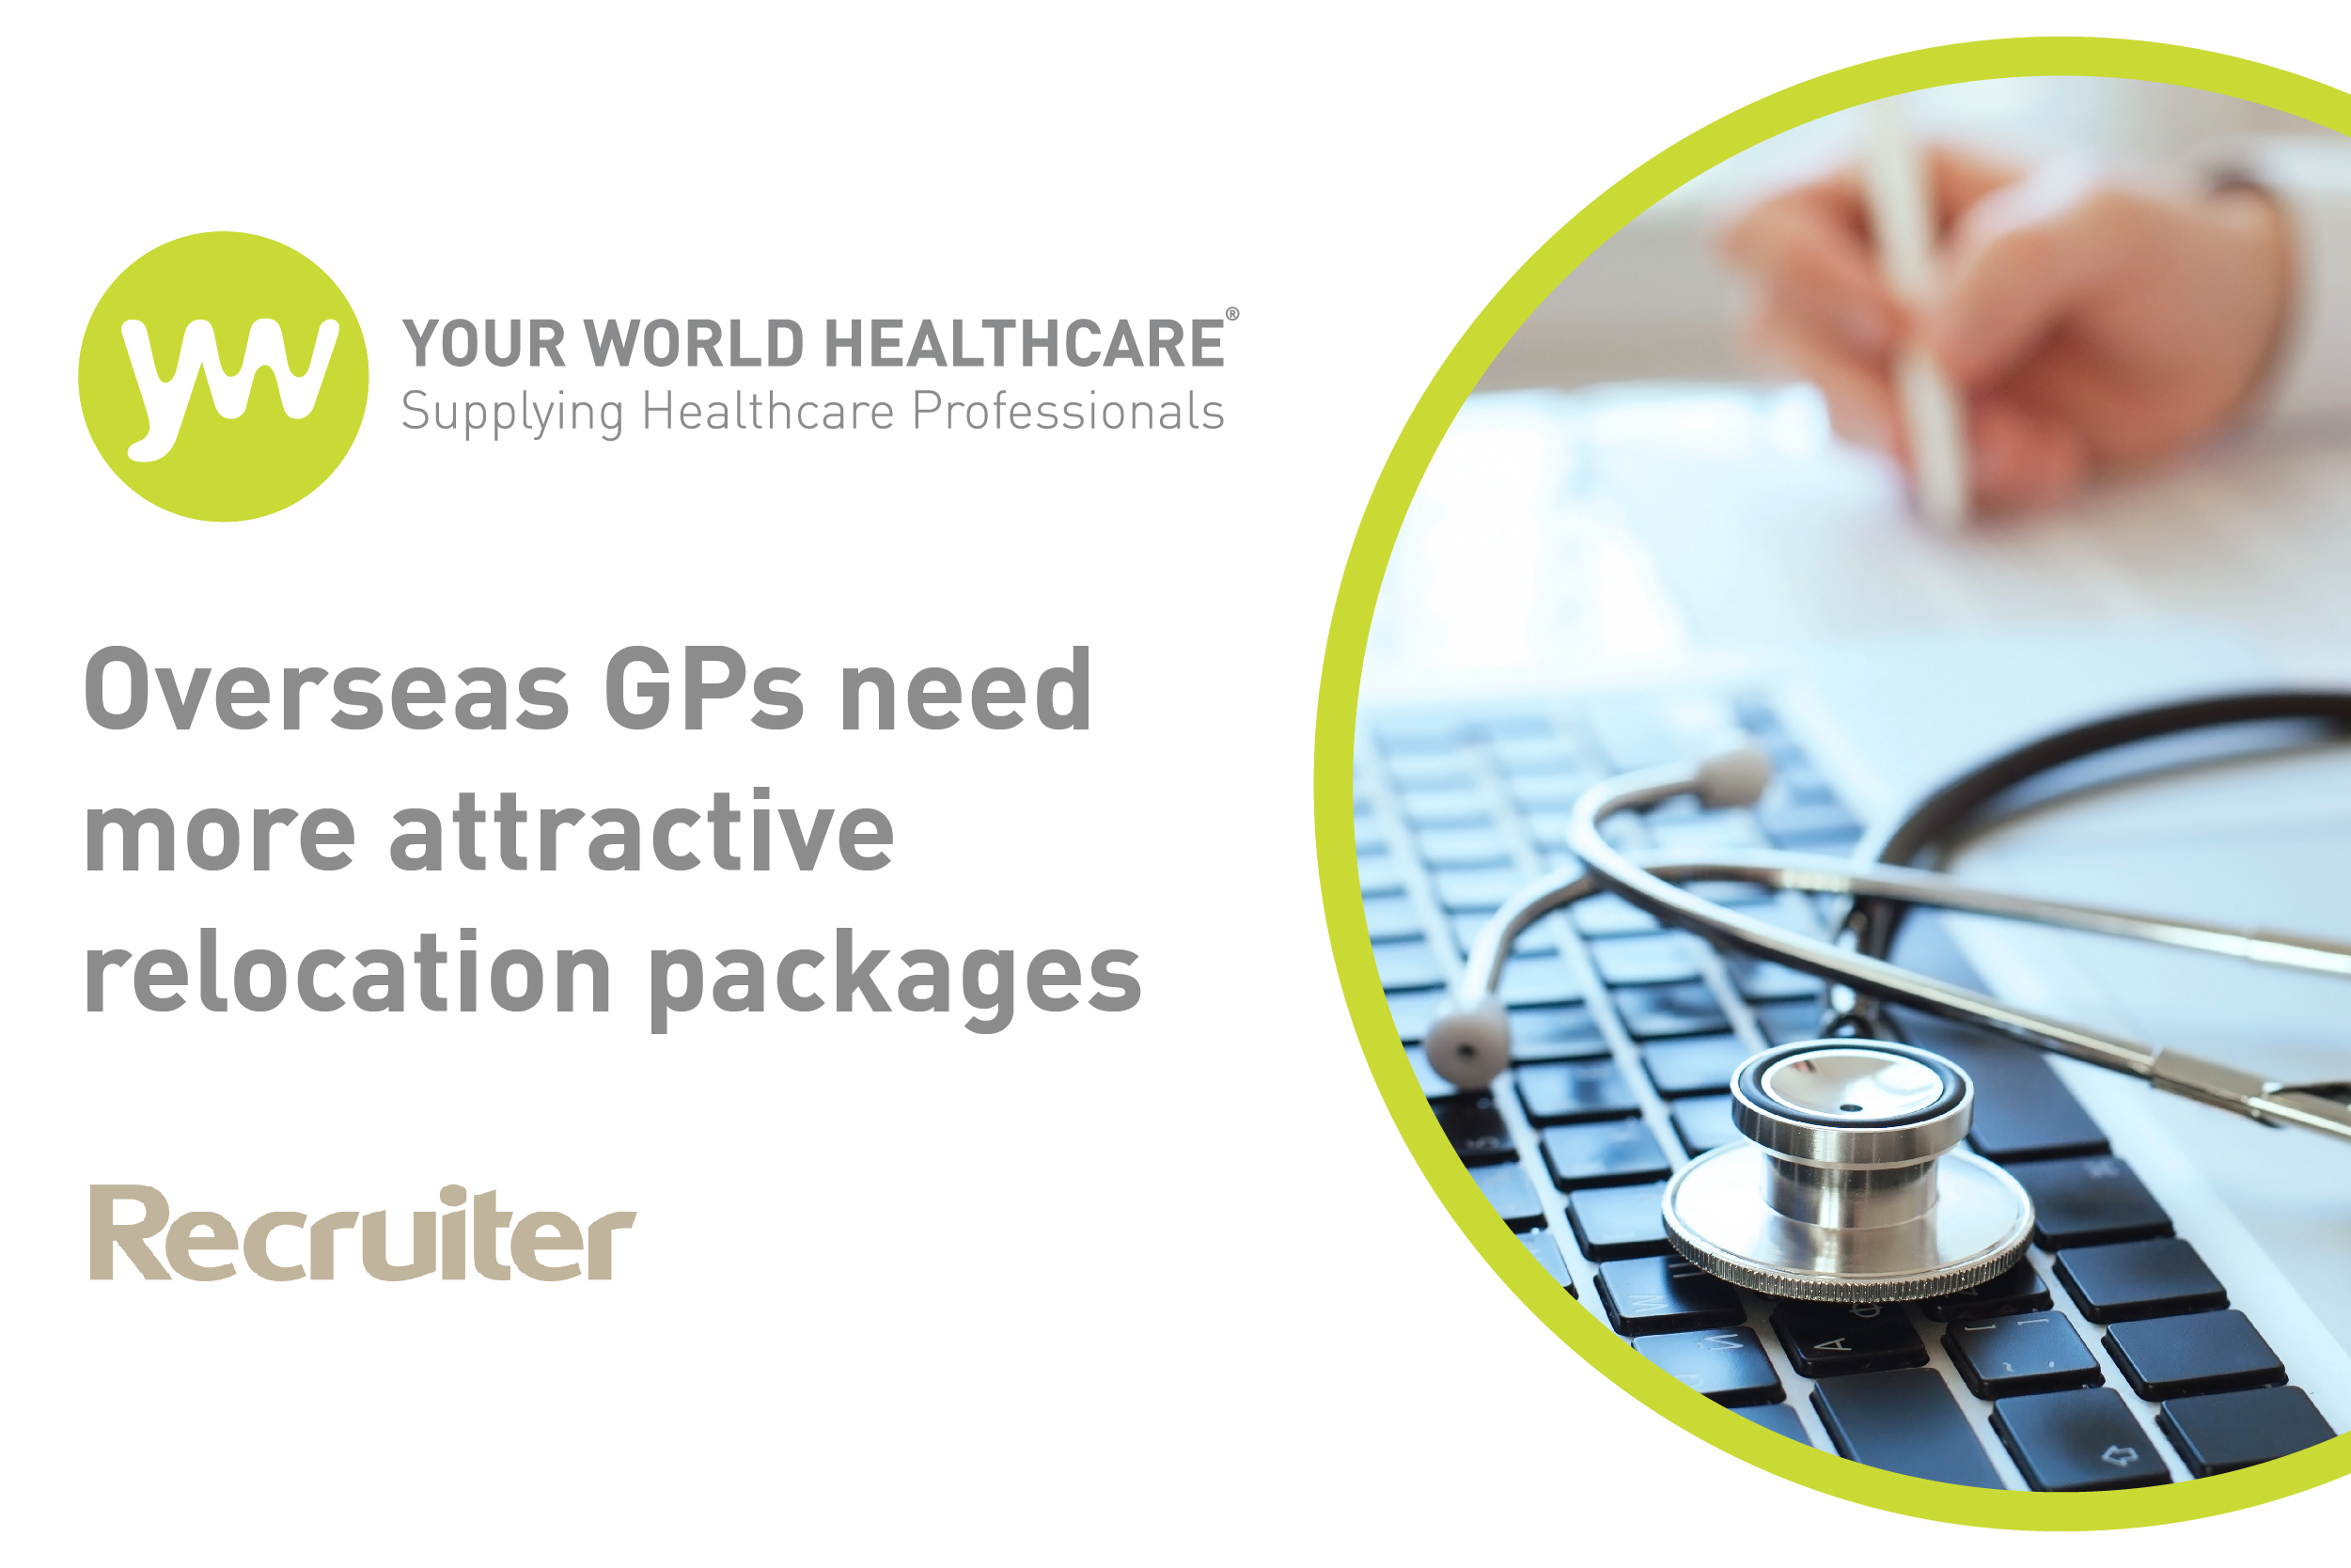 Overseas GPs need more attractive relocation packages